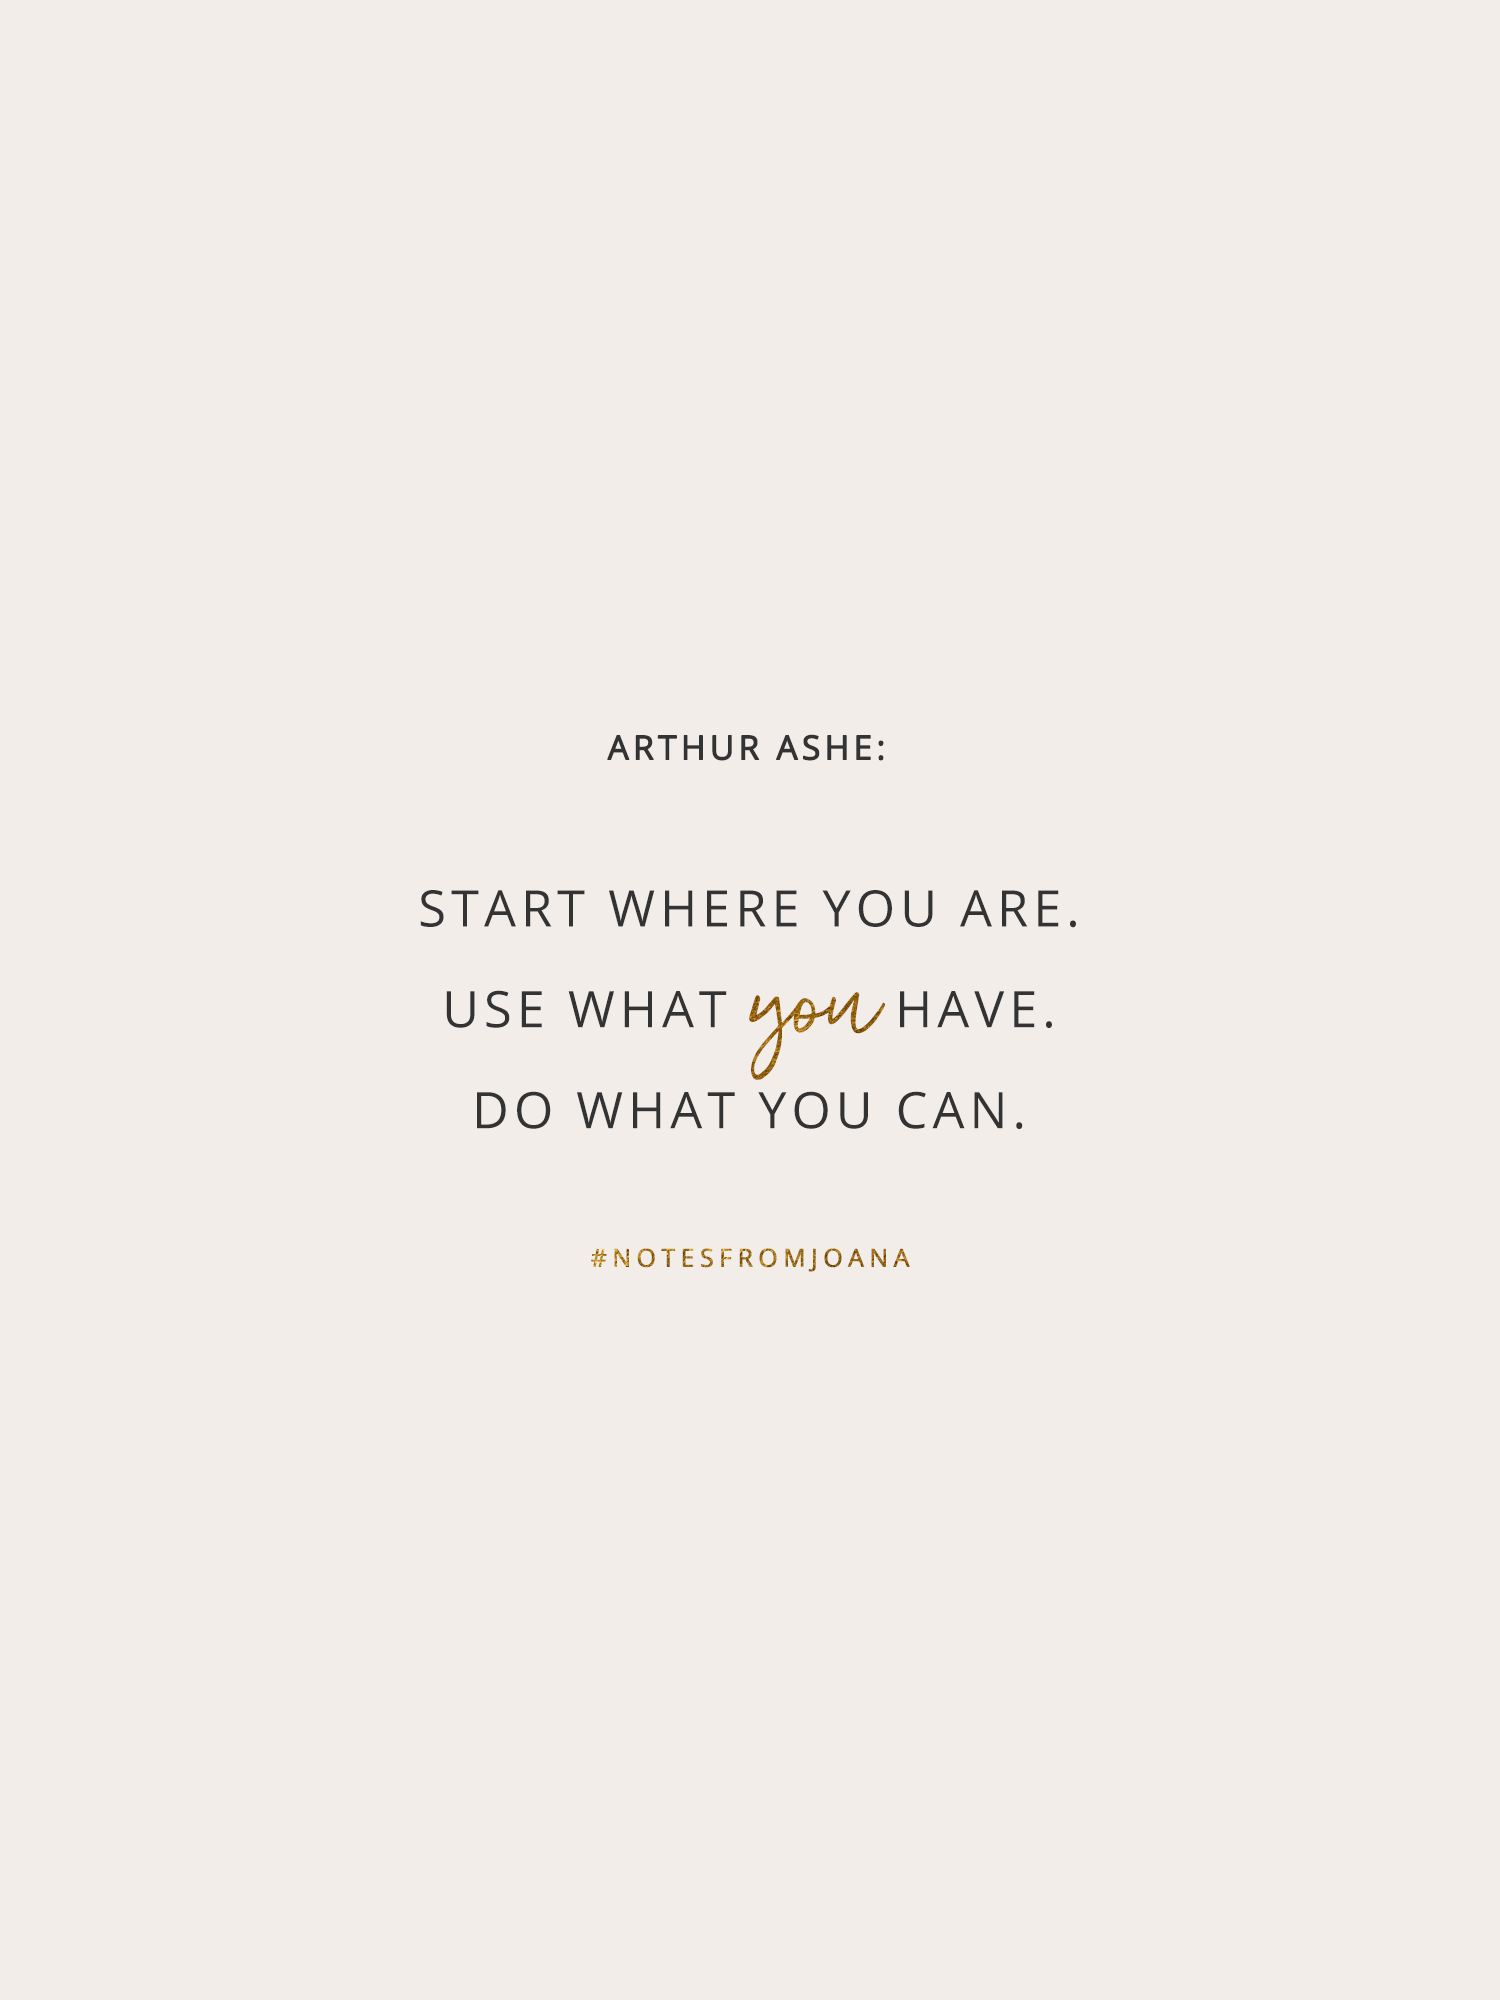 20 Inspirational Quotes To Help You Become Your Best Self. Start where you are. Use what you have. Do what you can. ARTHUR ASHE // Notes from Joana